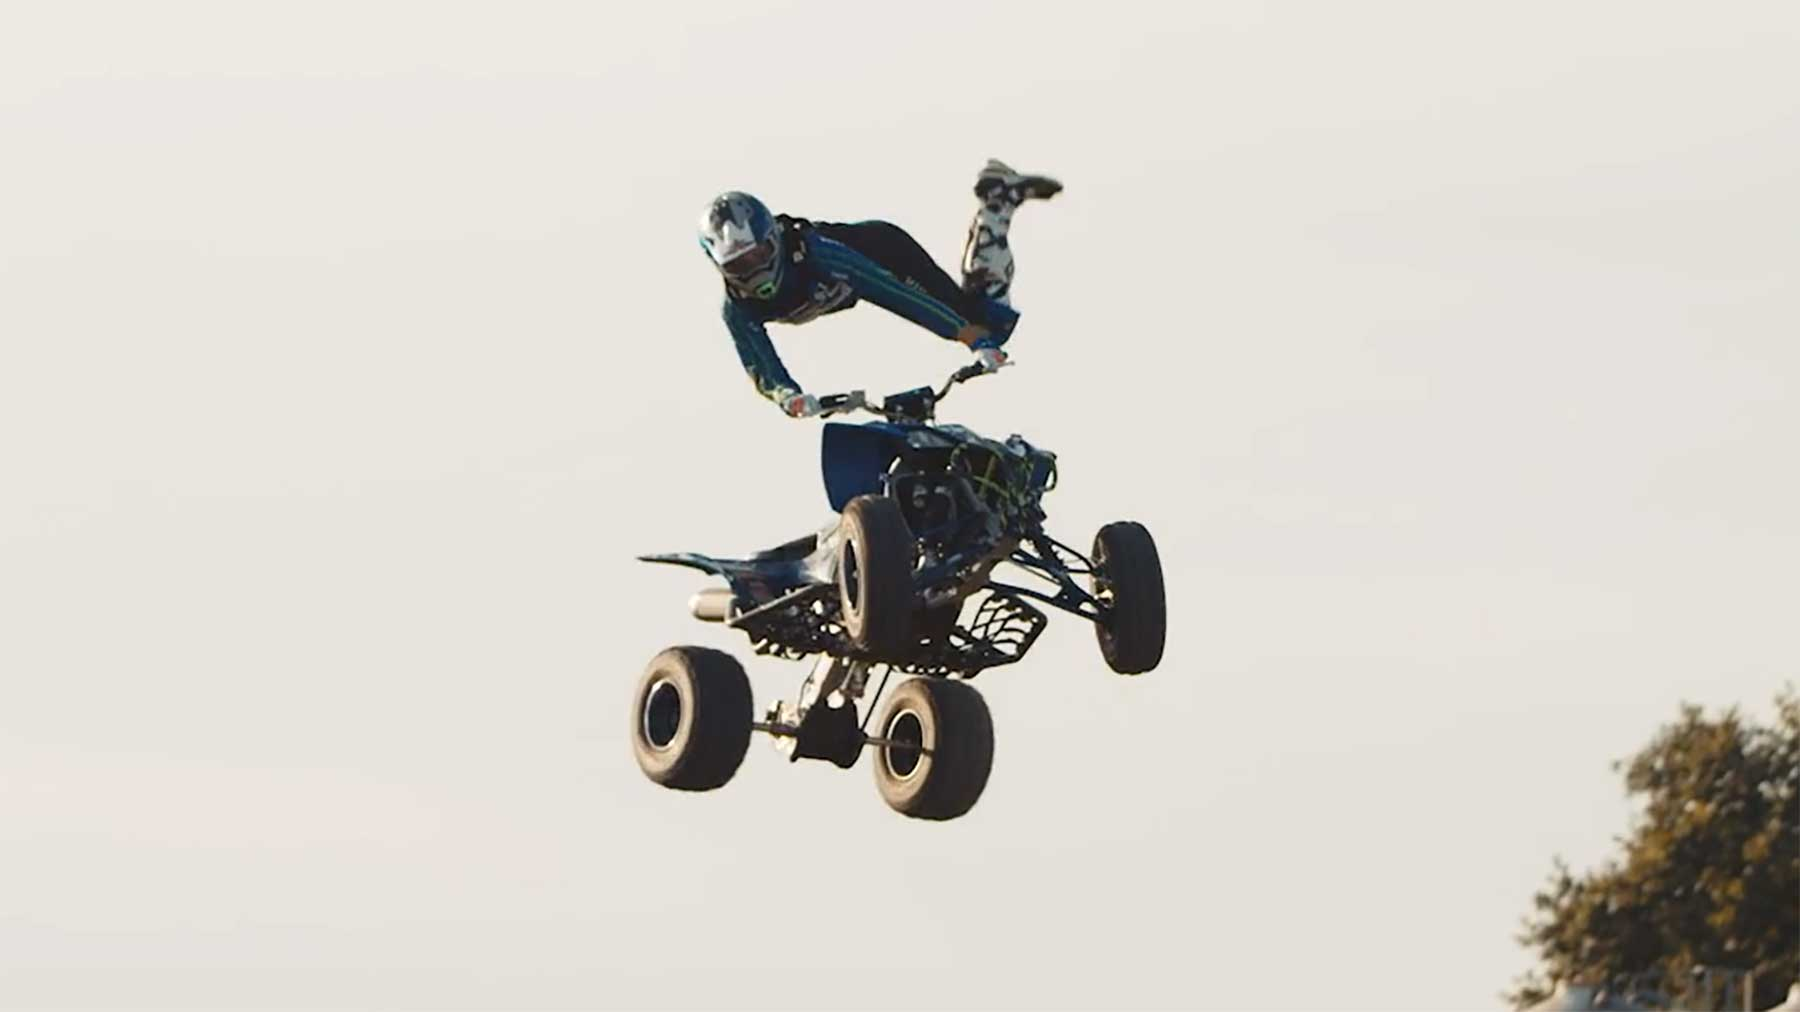 David Tharan macht Freestyle-Tricks auf dem Quad-Bike